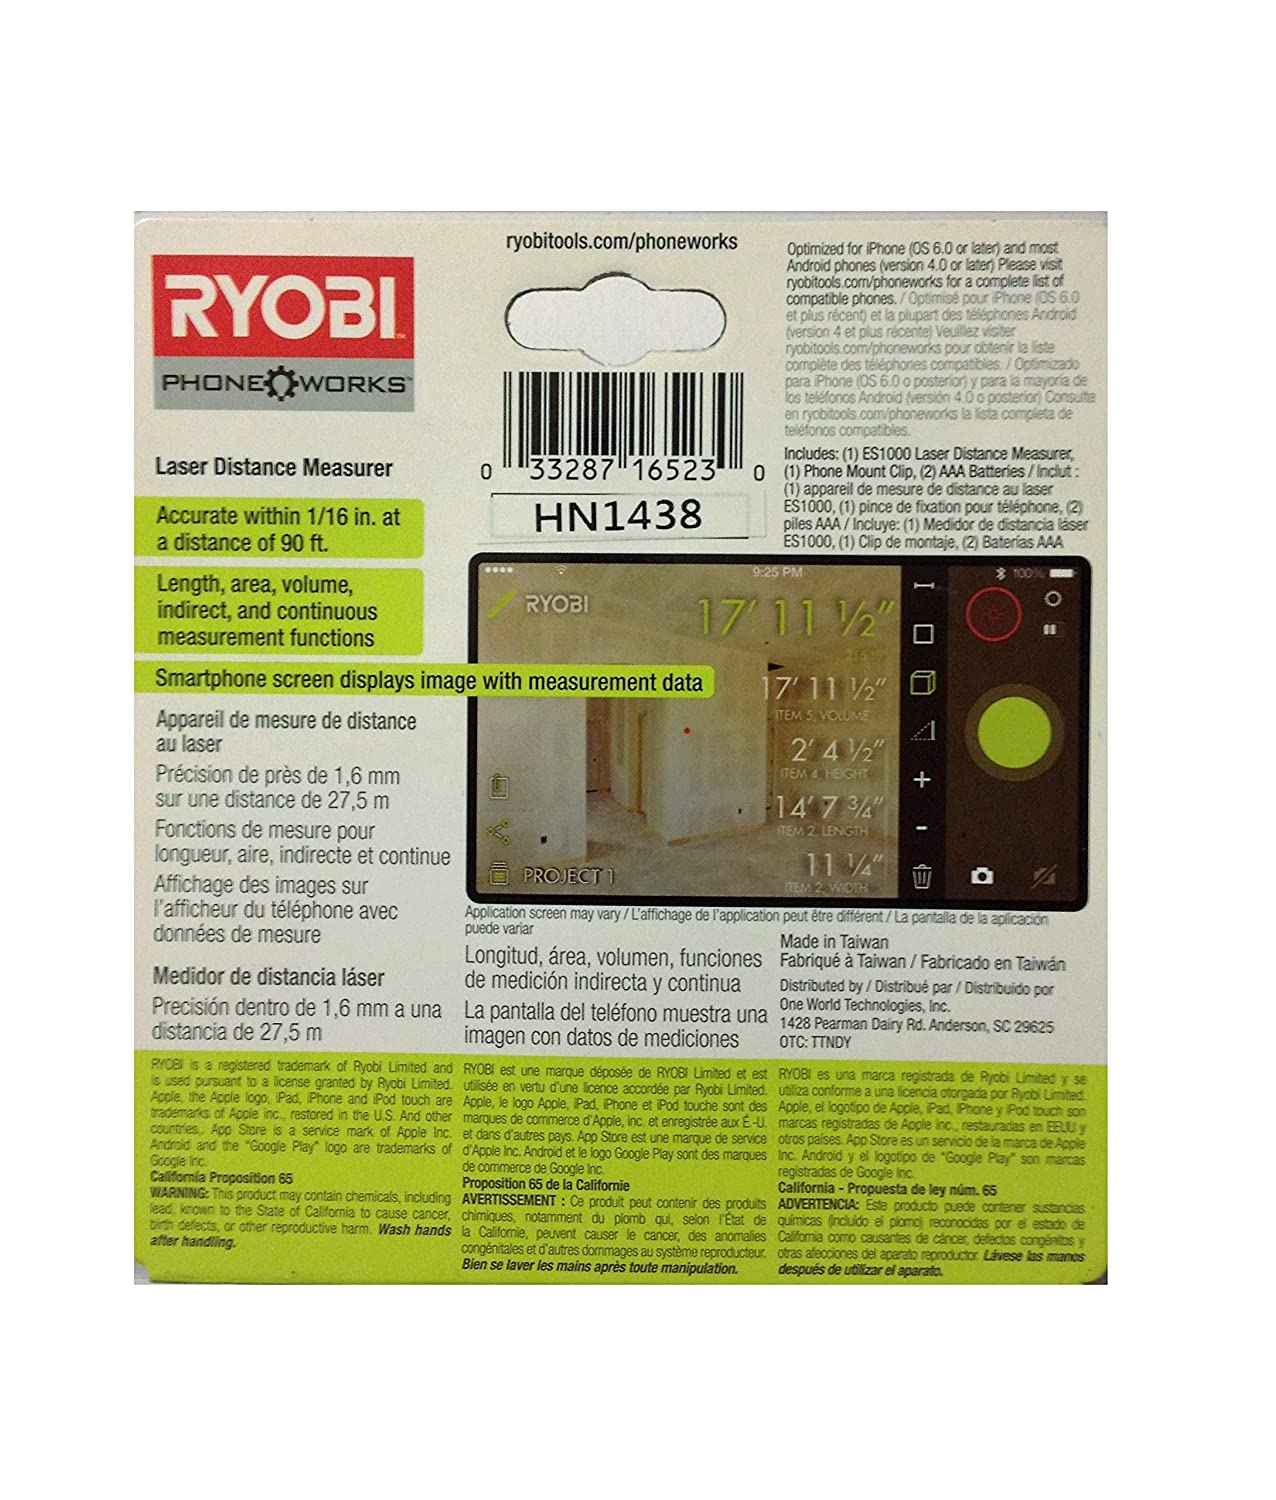 Amazon.com: Ryobi ES1000 Phone Works Laser Distance Measurer: Home Improvement